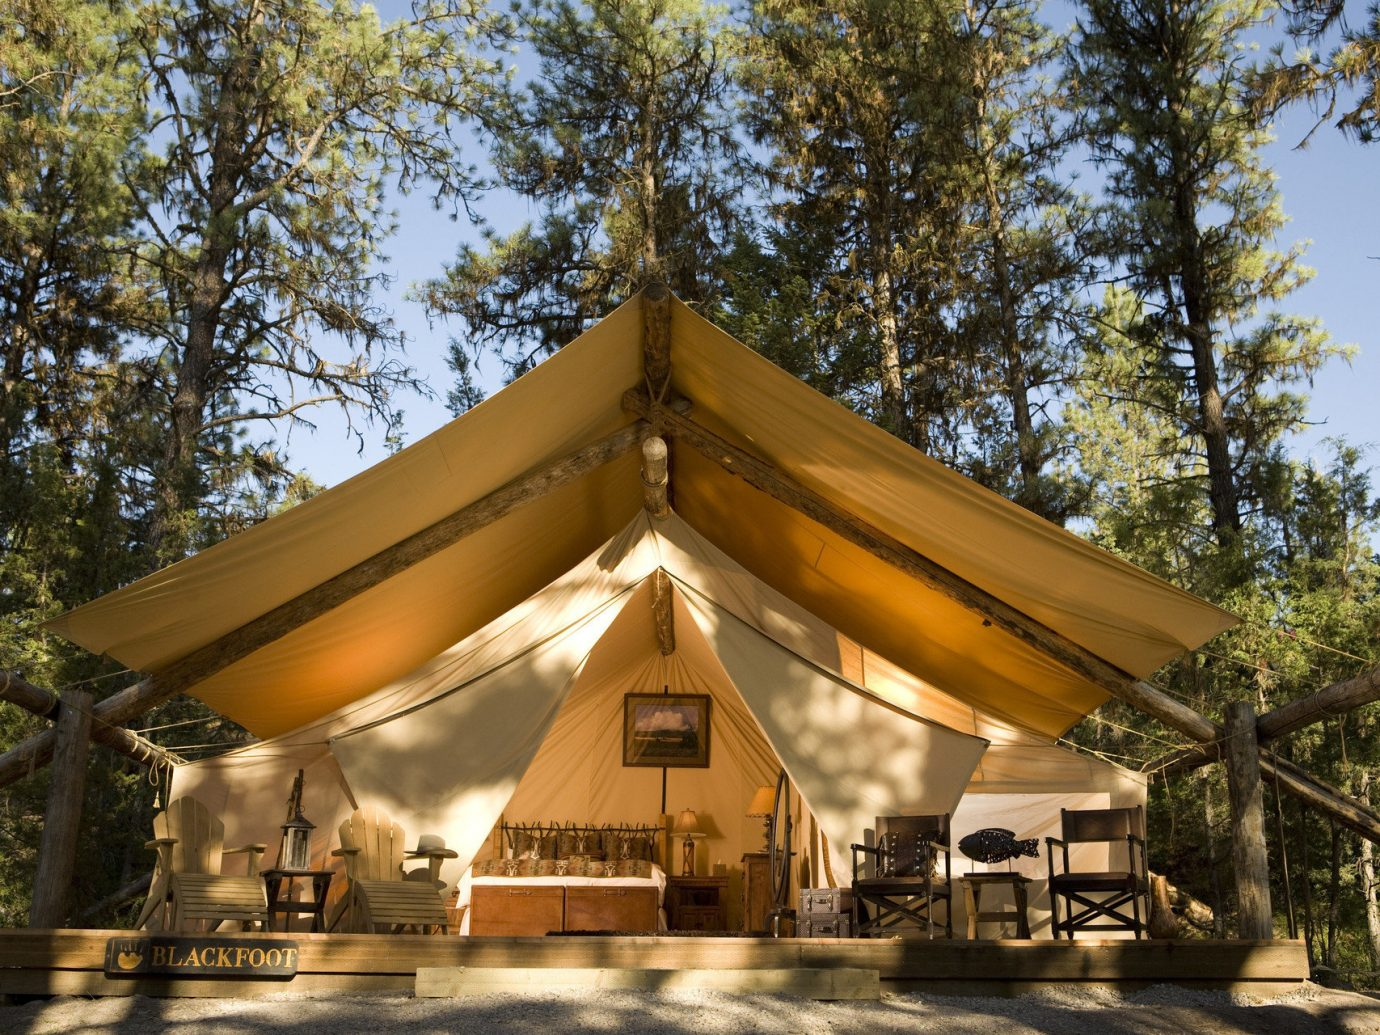 Exterior Glamping Luxury Nature Outdoors Outdoors + Adventure remote Rustic tent tents Weekend Getaways wilderness tree outdoor shinto shrine temple shrine pavilion place of worship outdoor object